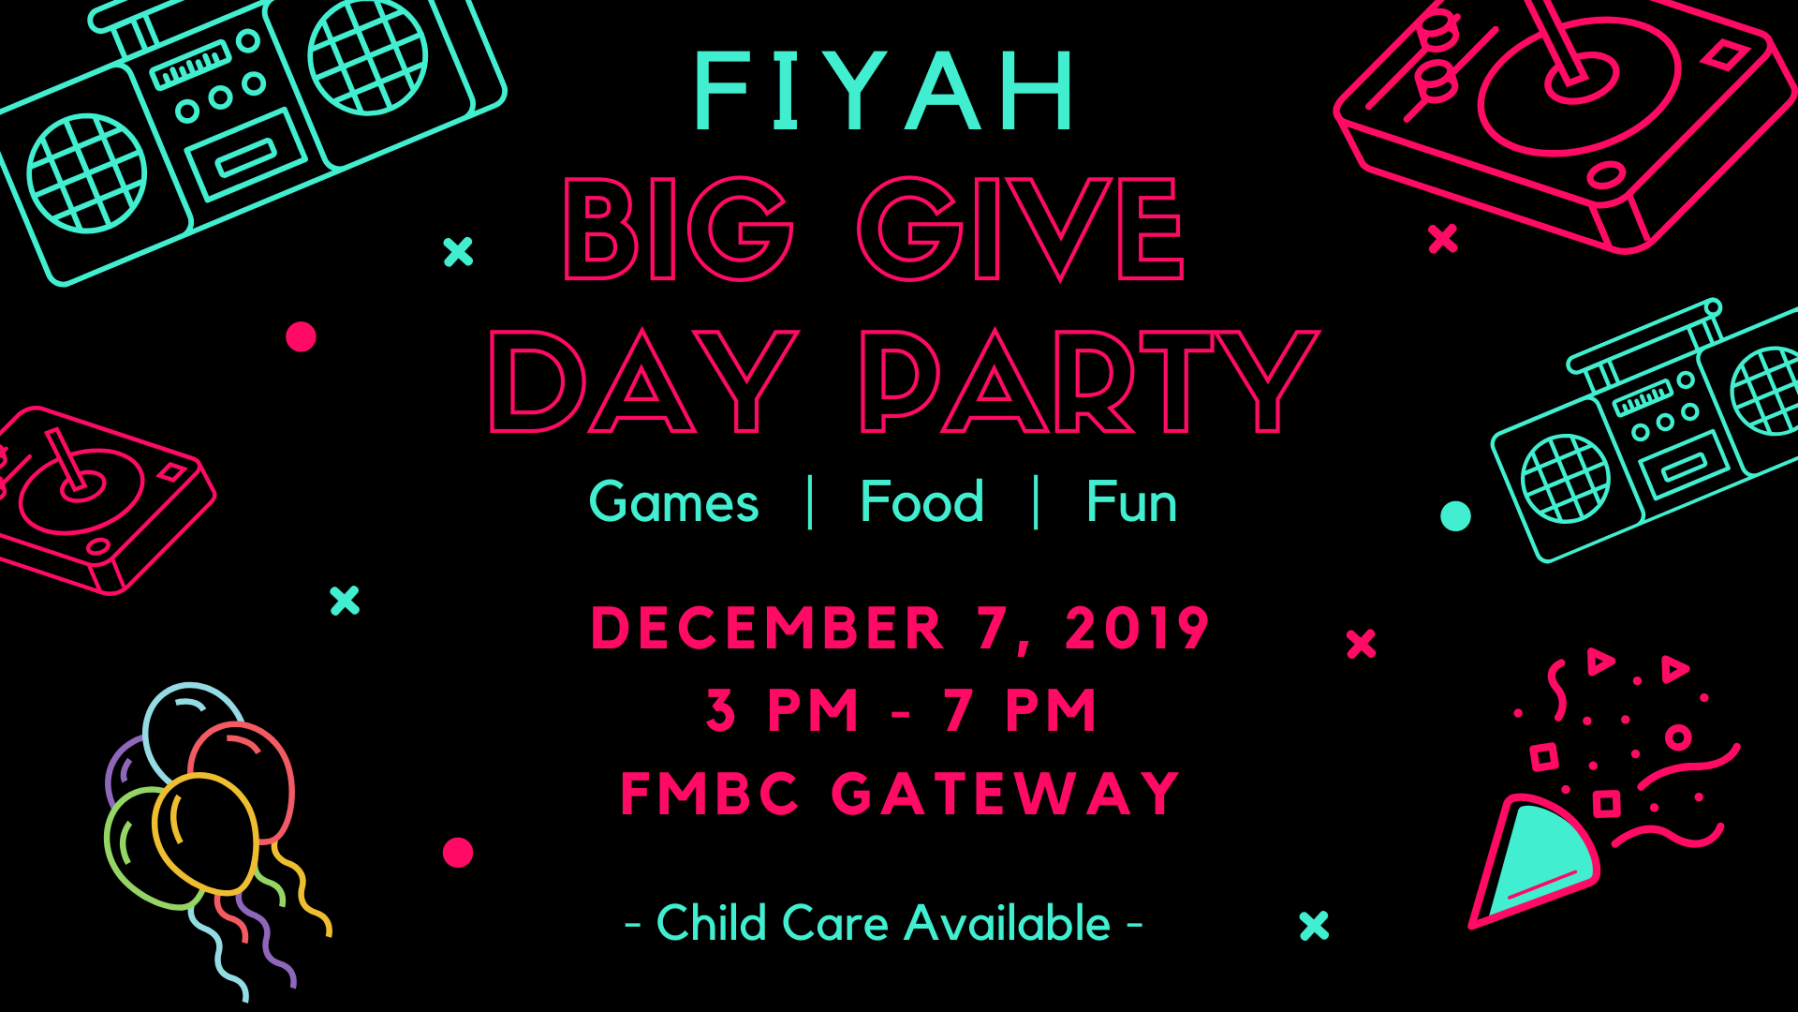 FIYAH Big Give Day Party